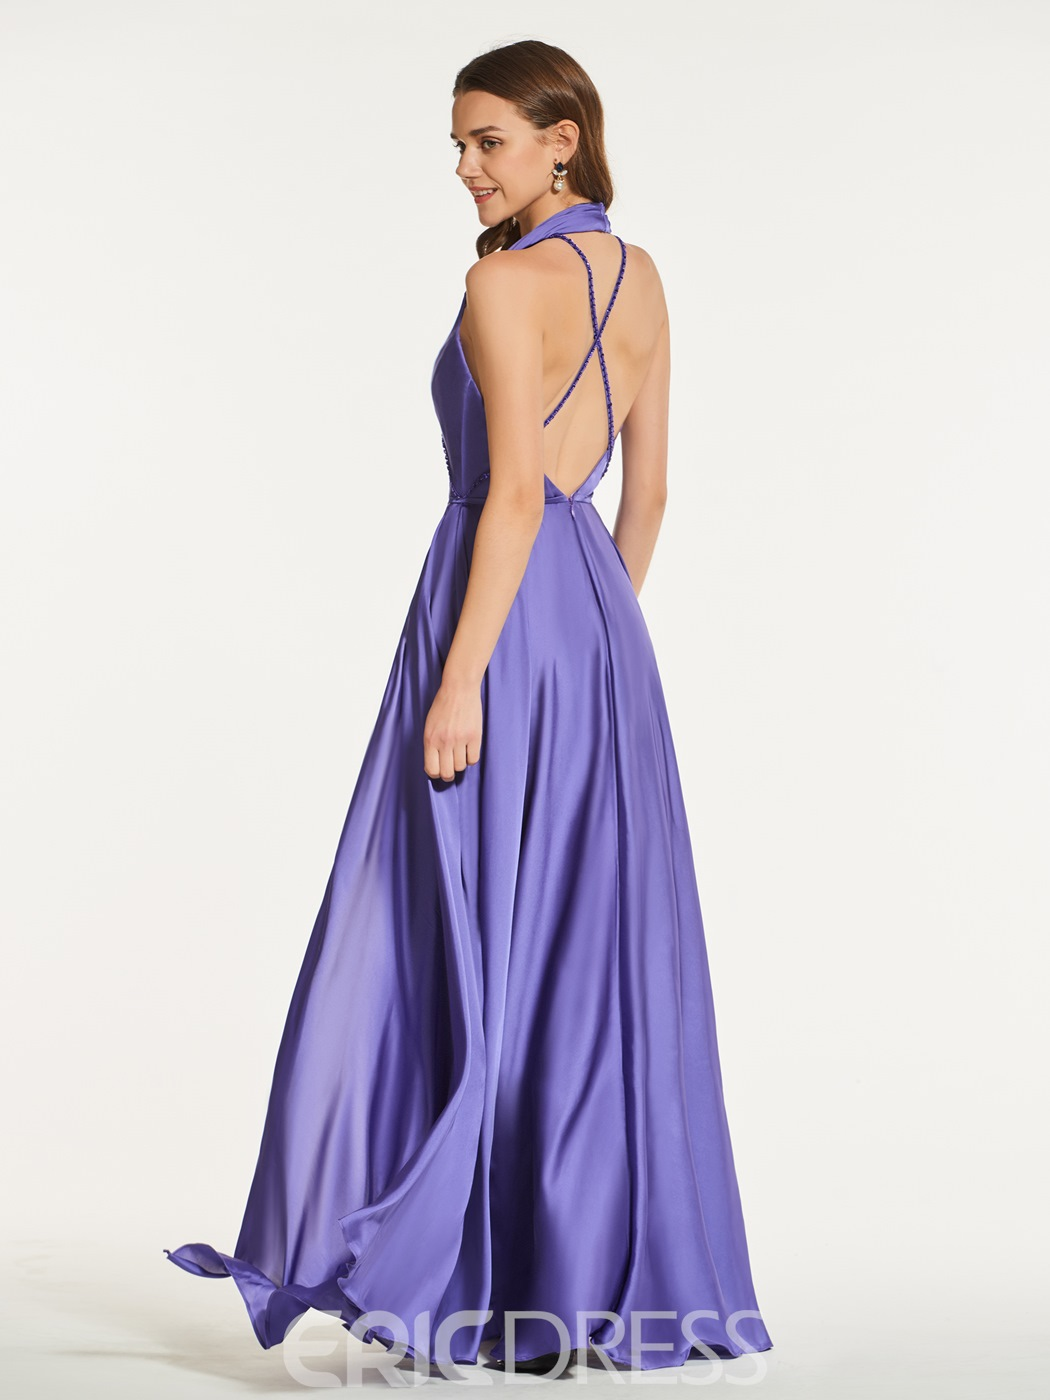 Ericdress A Line Halter Beaded Deep Neck Prom Dress With Criss-Cross Strap